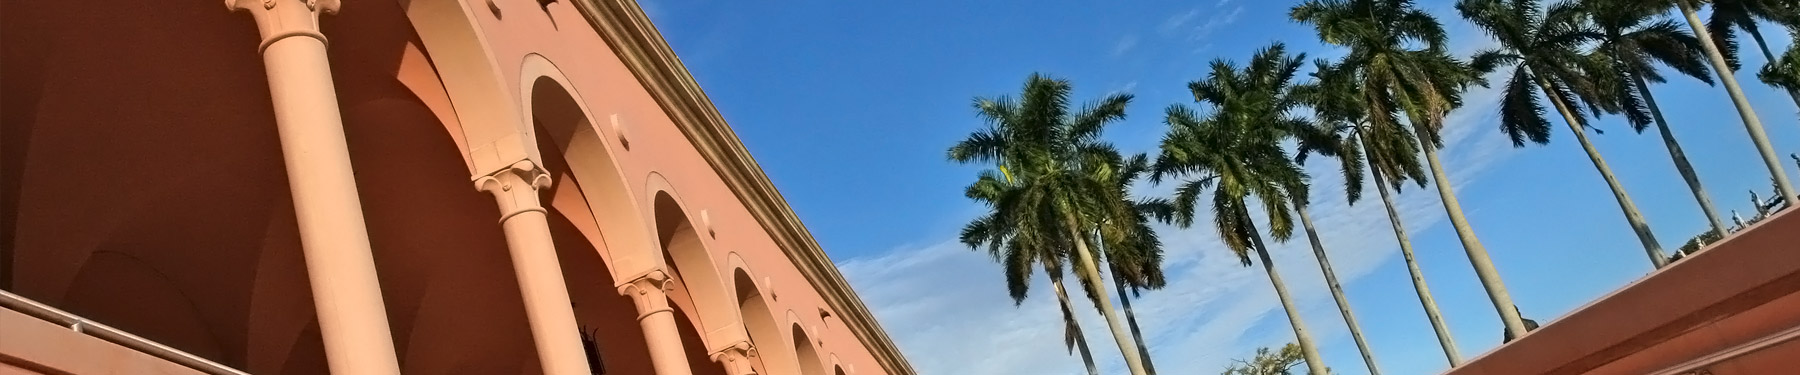 Breezy palms and stunning architecture at the Ringling Museum of Art